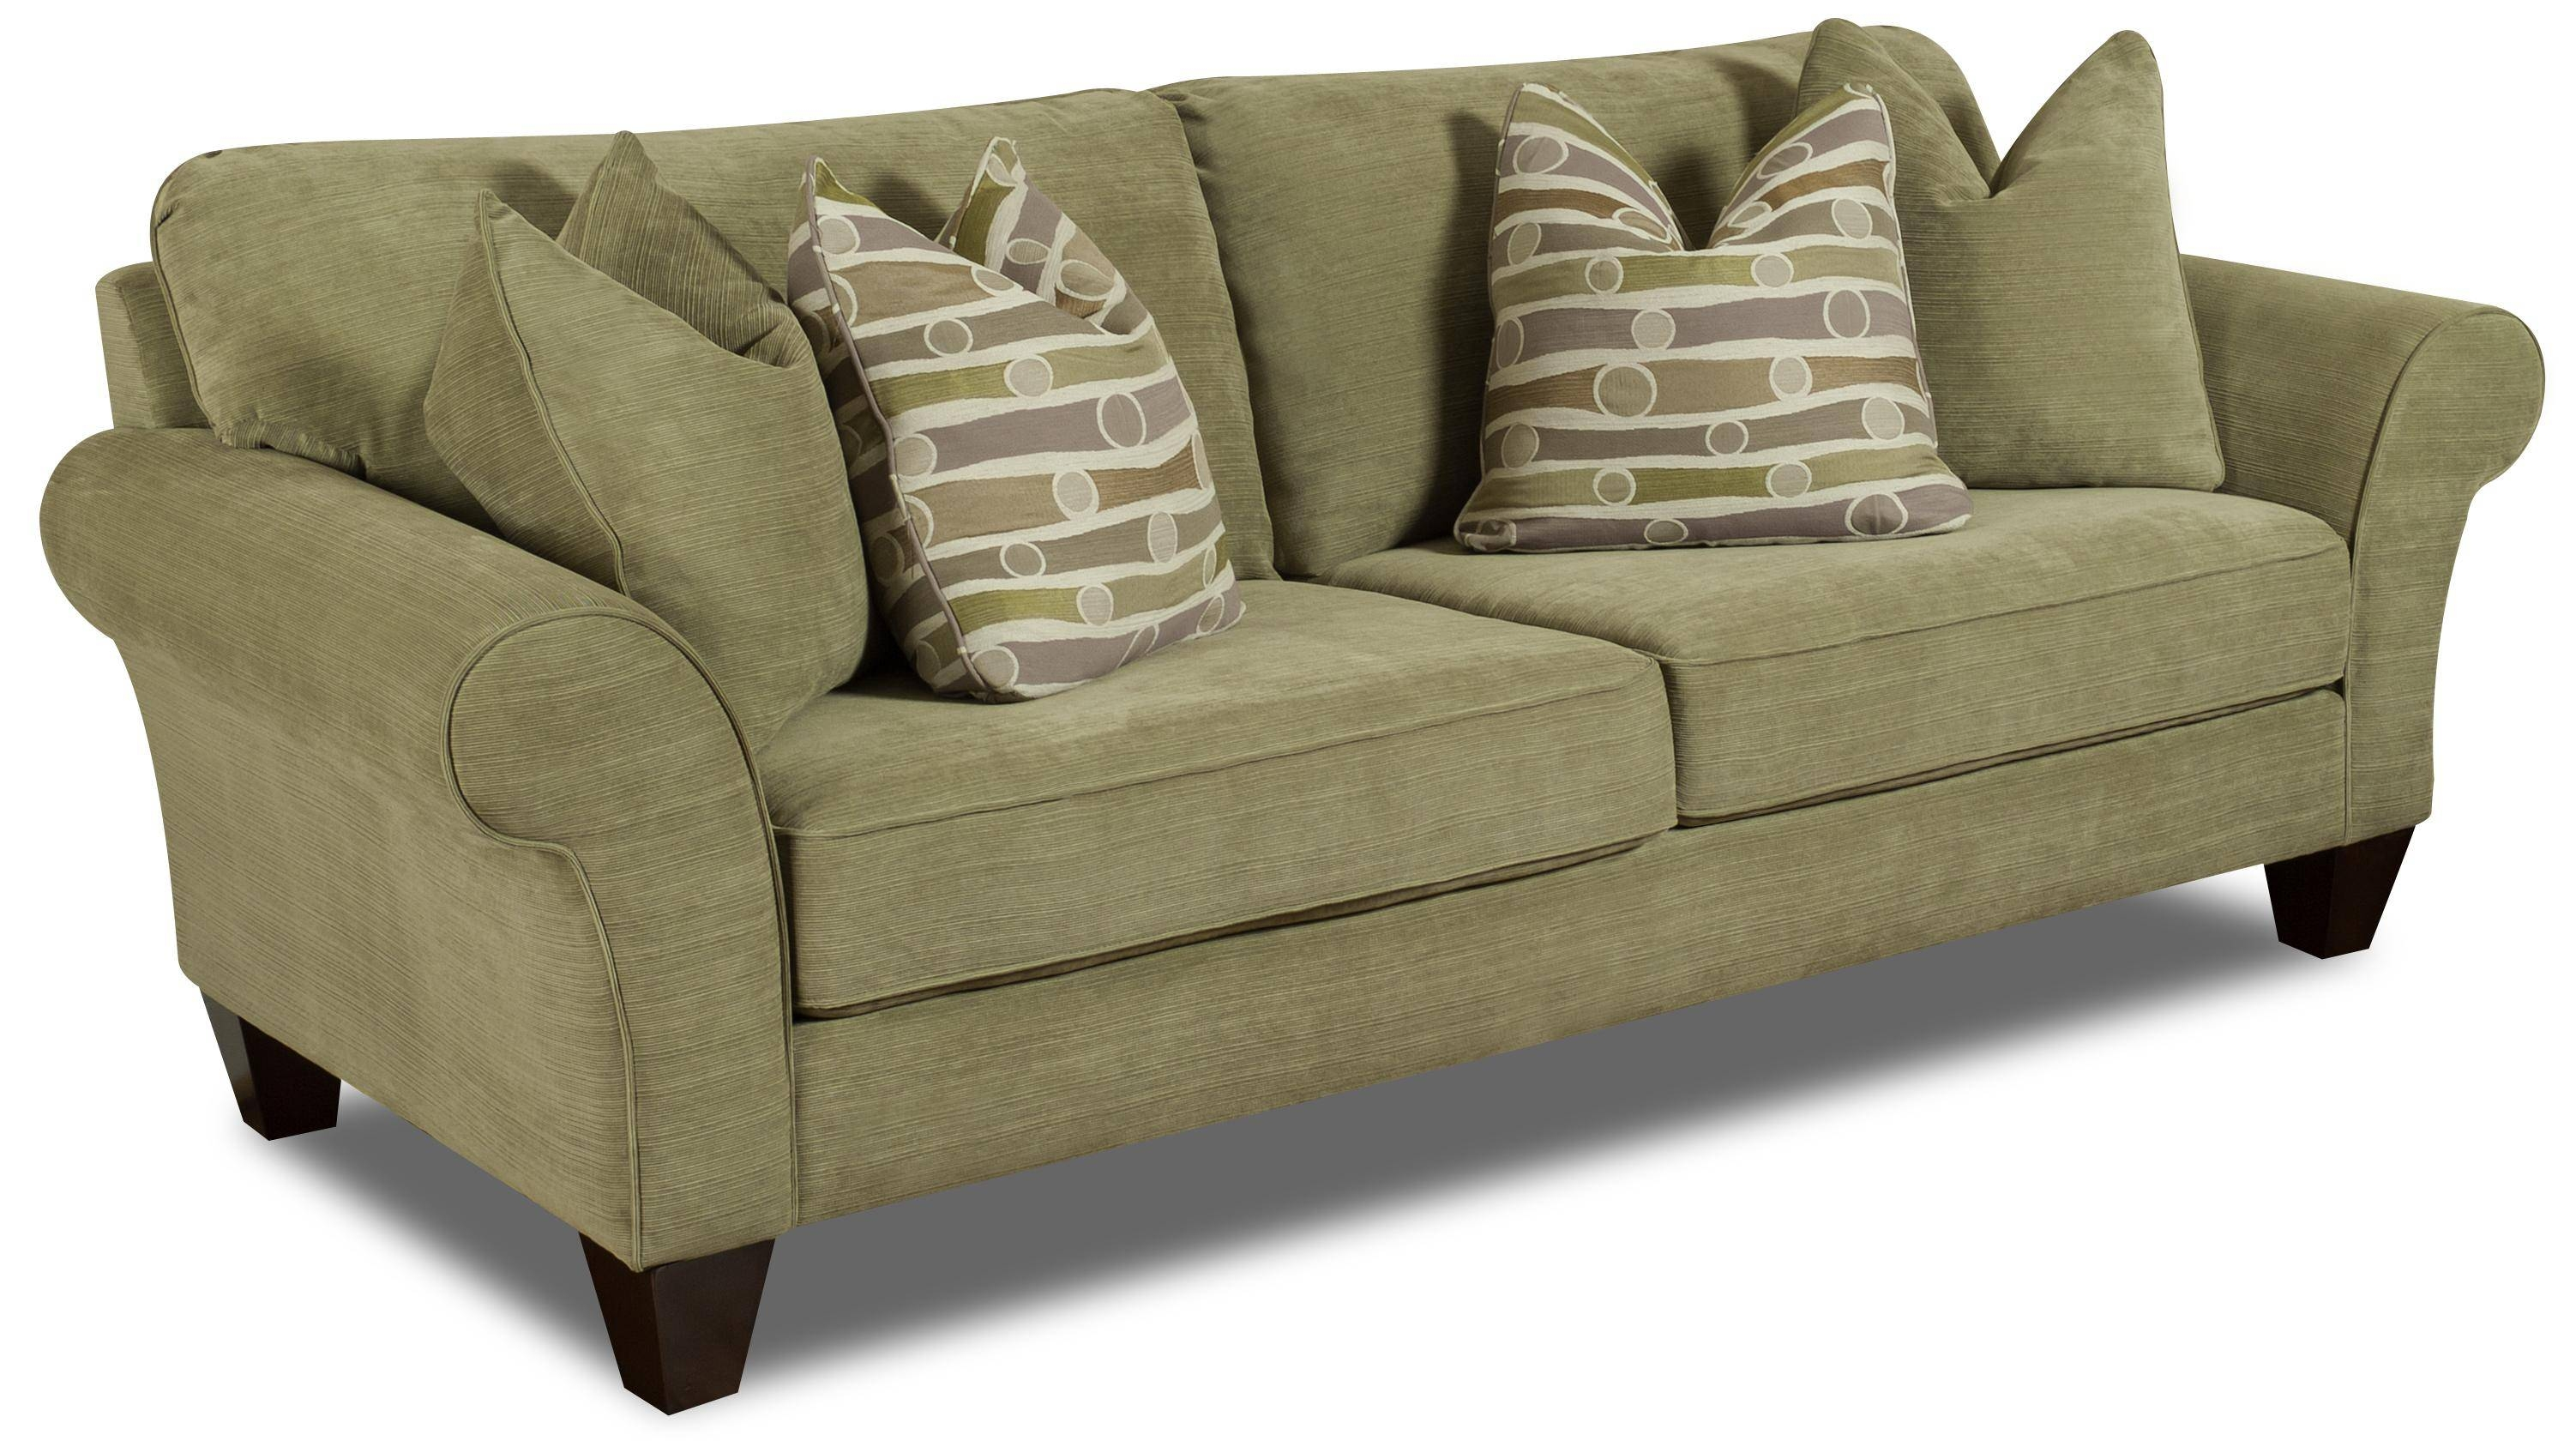 The Most Popular Bauhaus Sectional Sofa 76 For Your American Made for American Made Sectional Sofas (Image 24 of 30)